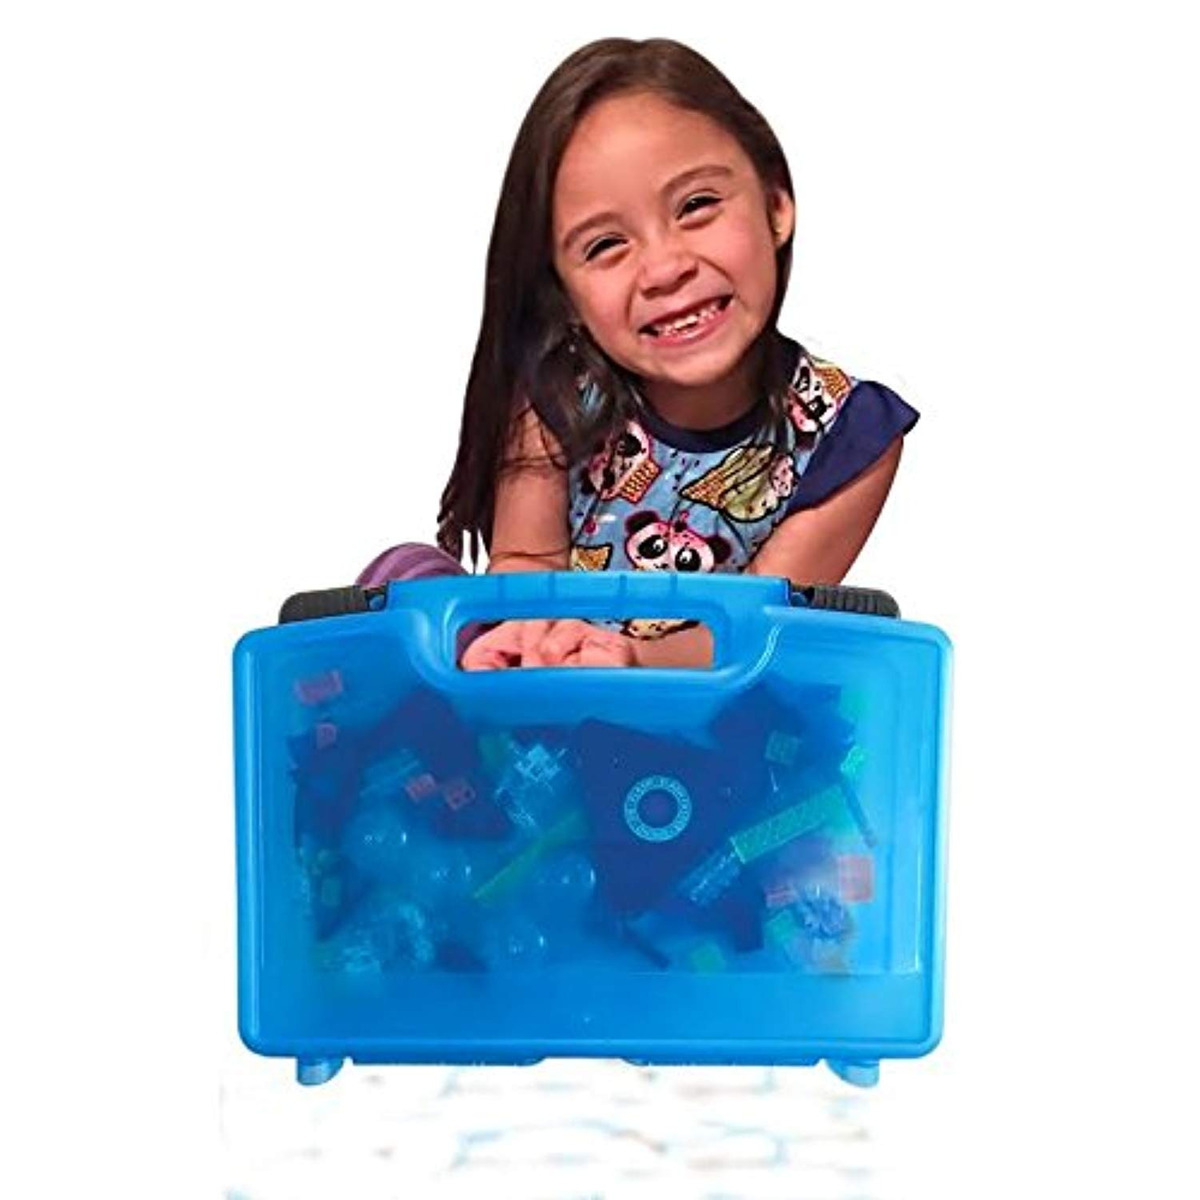 Toy Storage Carrying Box Figures Playset Organizer Accessories Kids LMB LMB1963 Life Made Better Laser Pegs Case